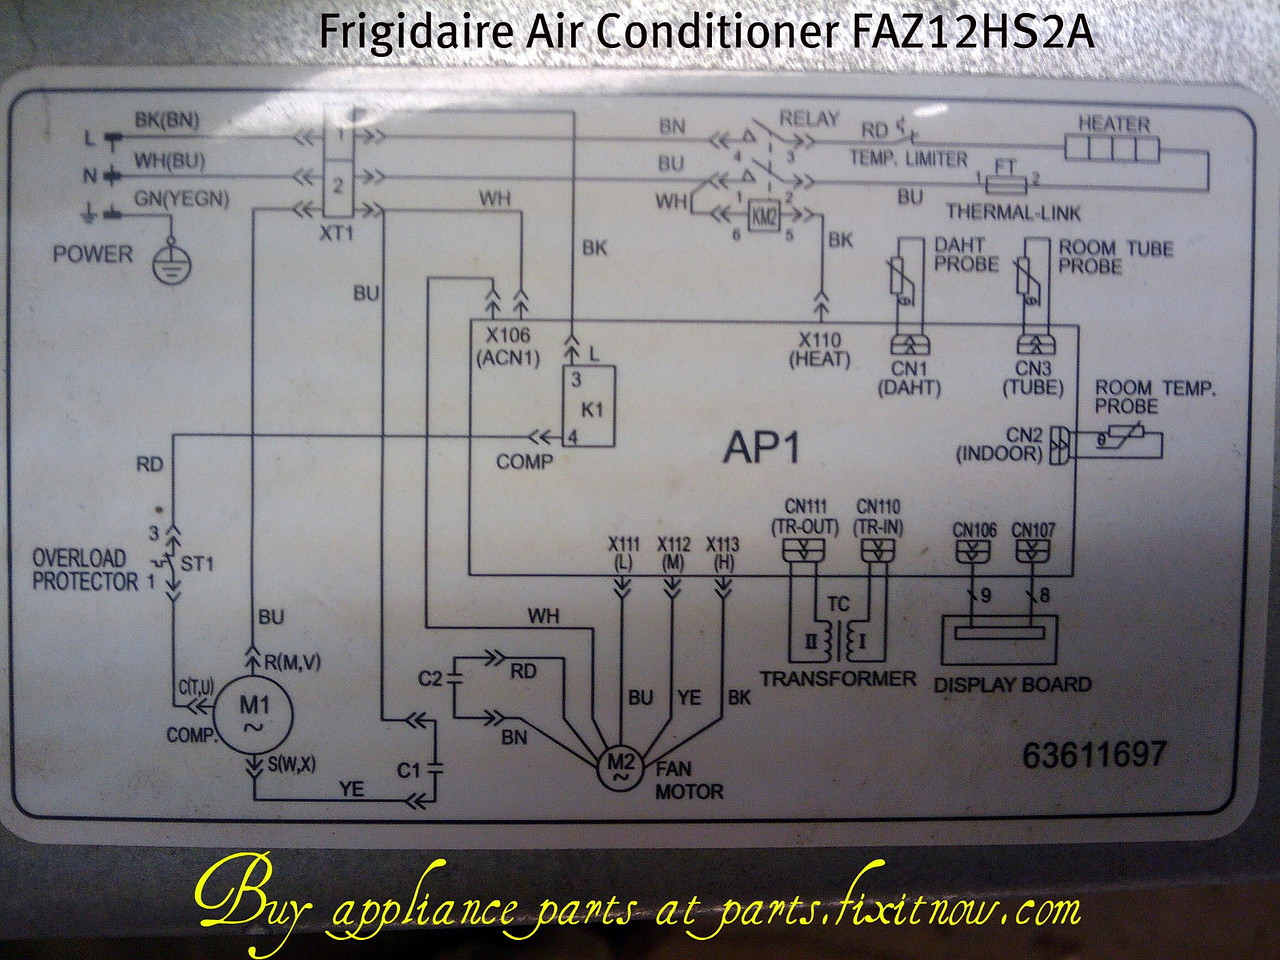 5222984234_5c54e75af1_o X2 wiring diagrams and schematics appliantology frigidaire freezer wiring diagram at edmiracle.co